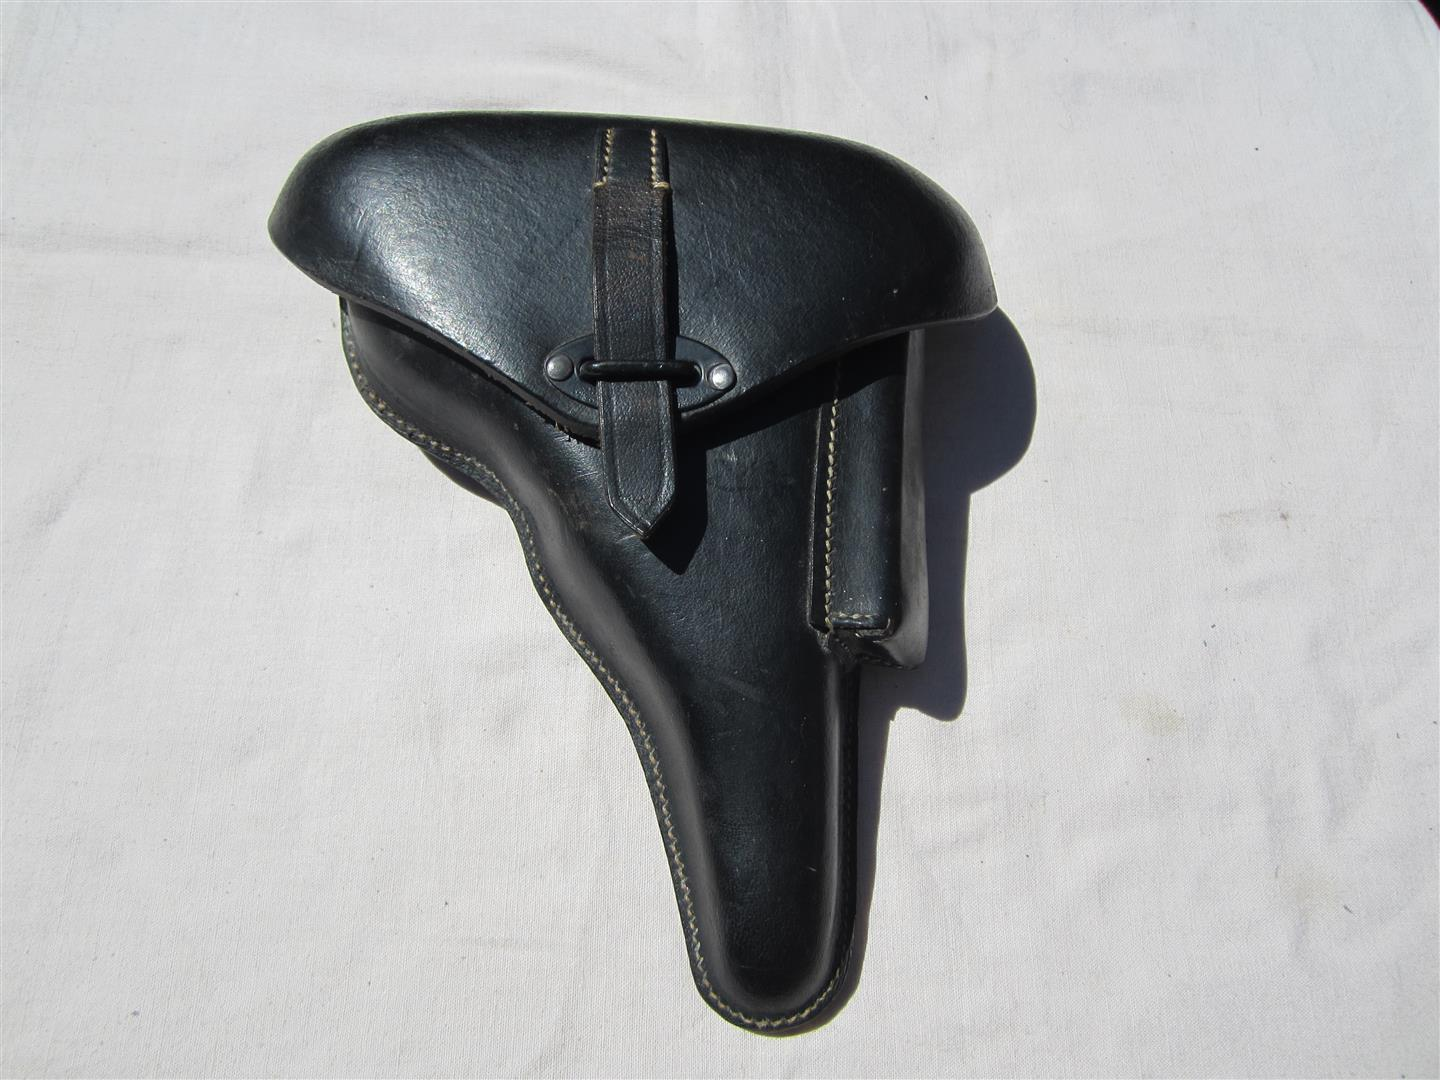 WW2 WH P38 Hard Shell Holster